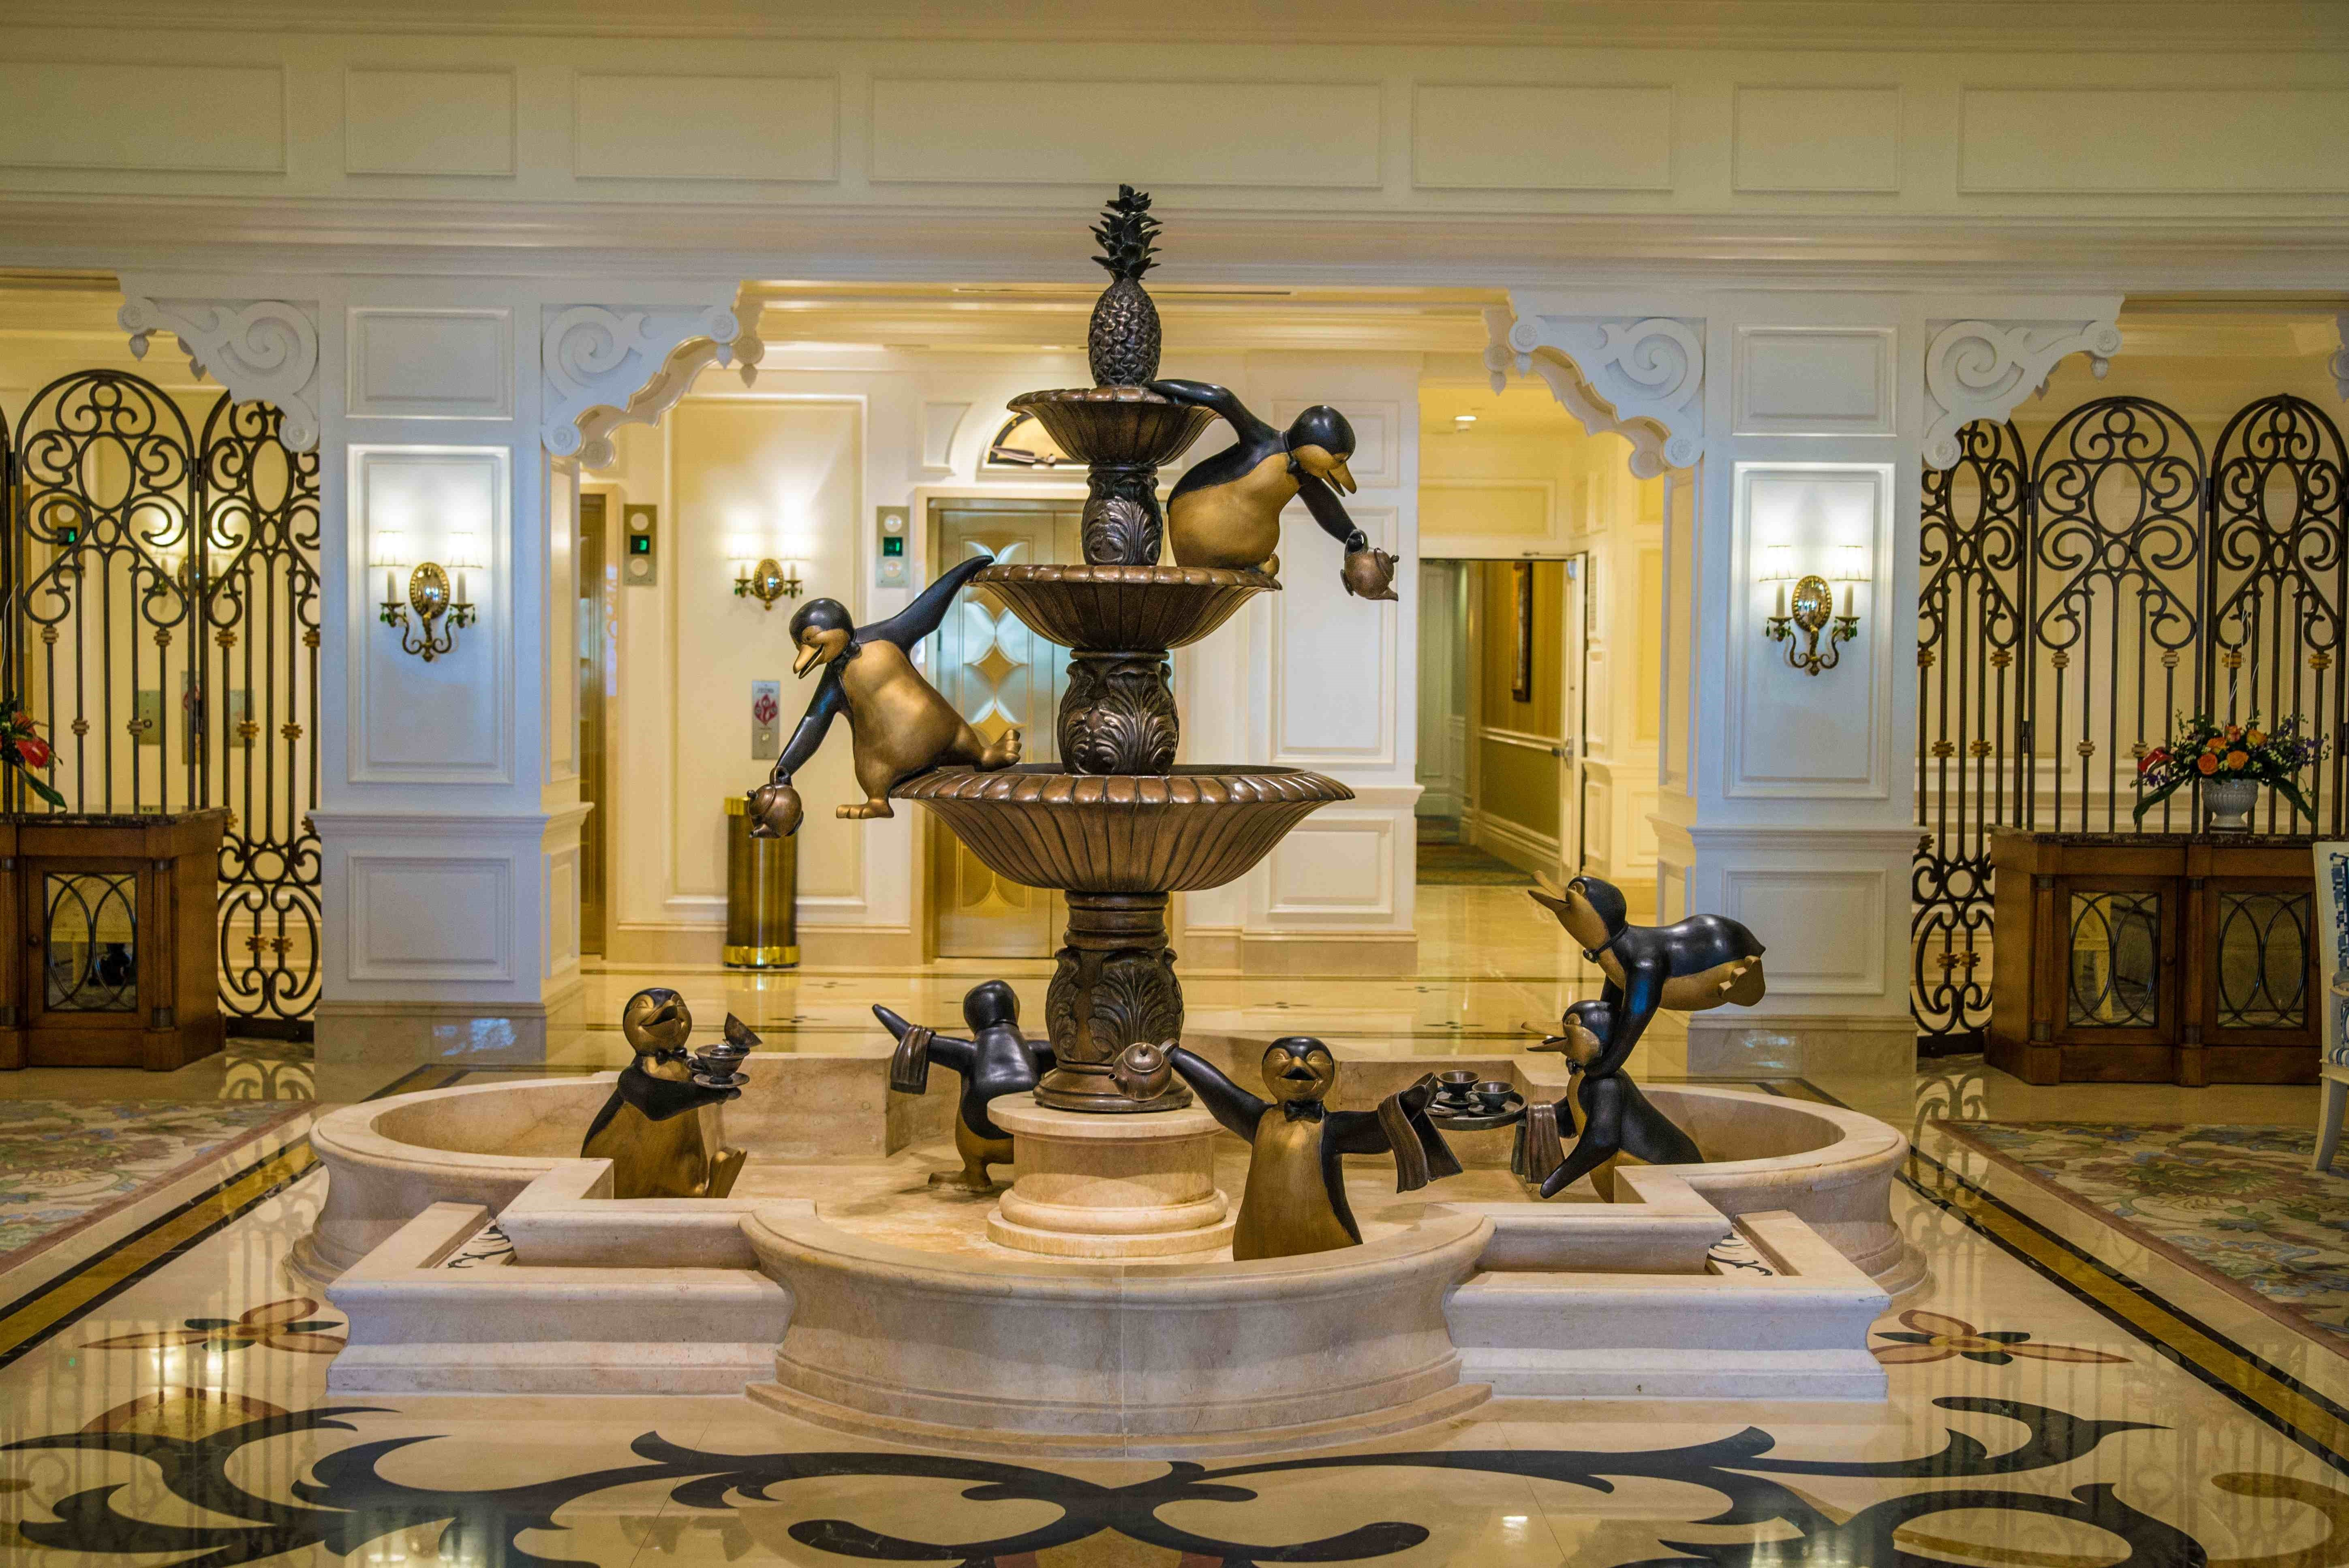 The Mary Poppins Penguin fountain inside Disney's Grand Floridian Resort & Spa